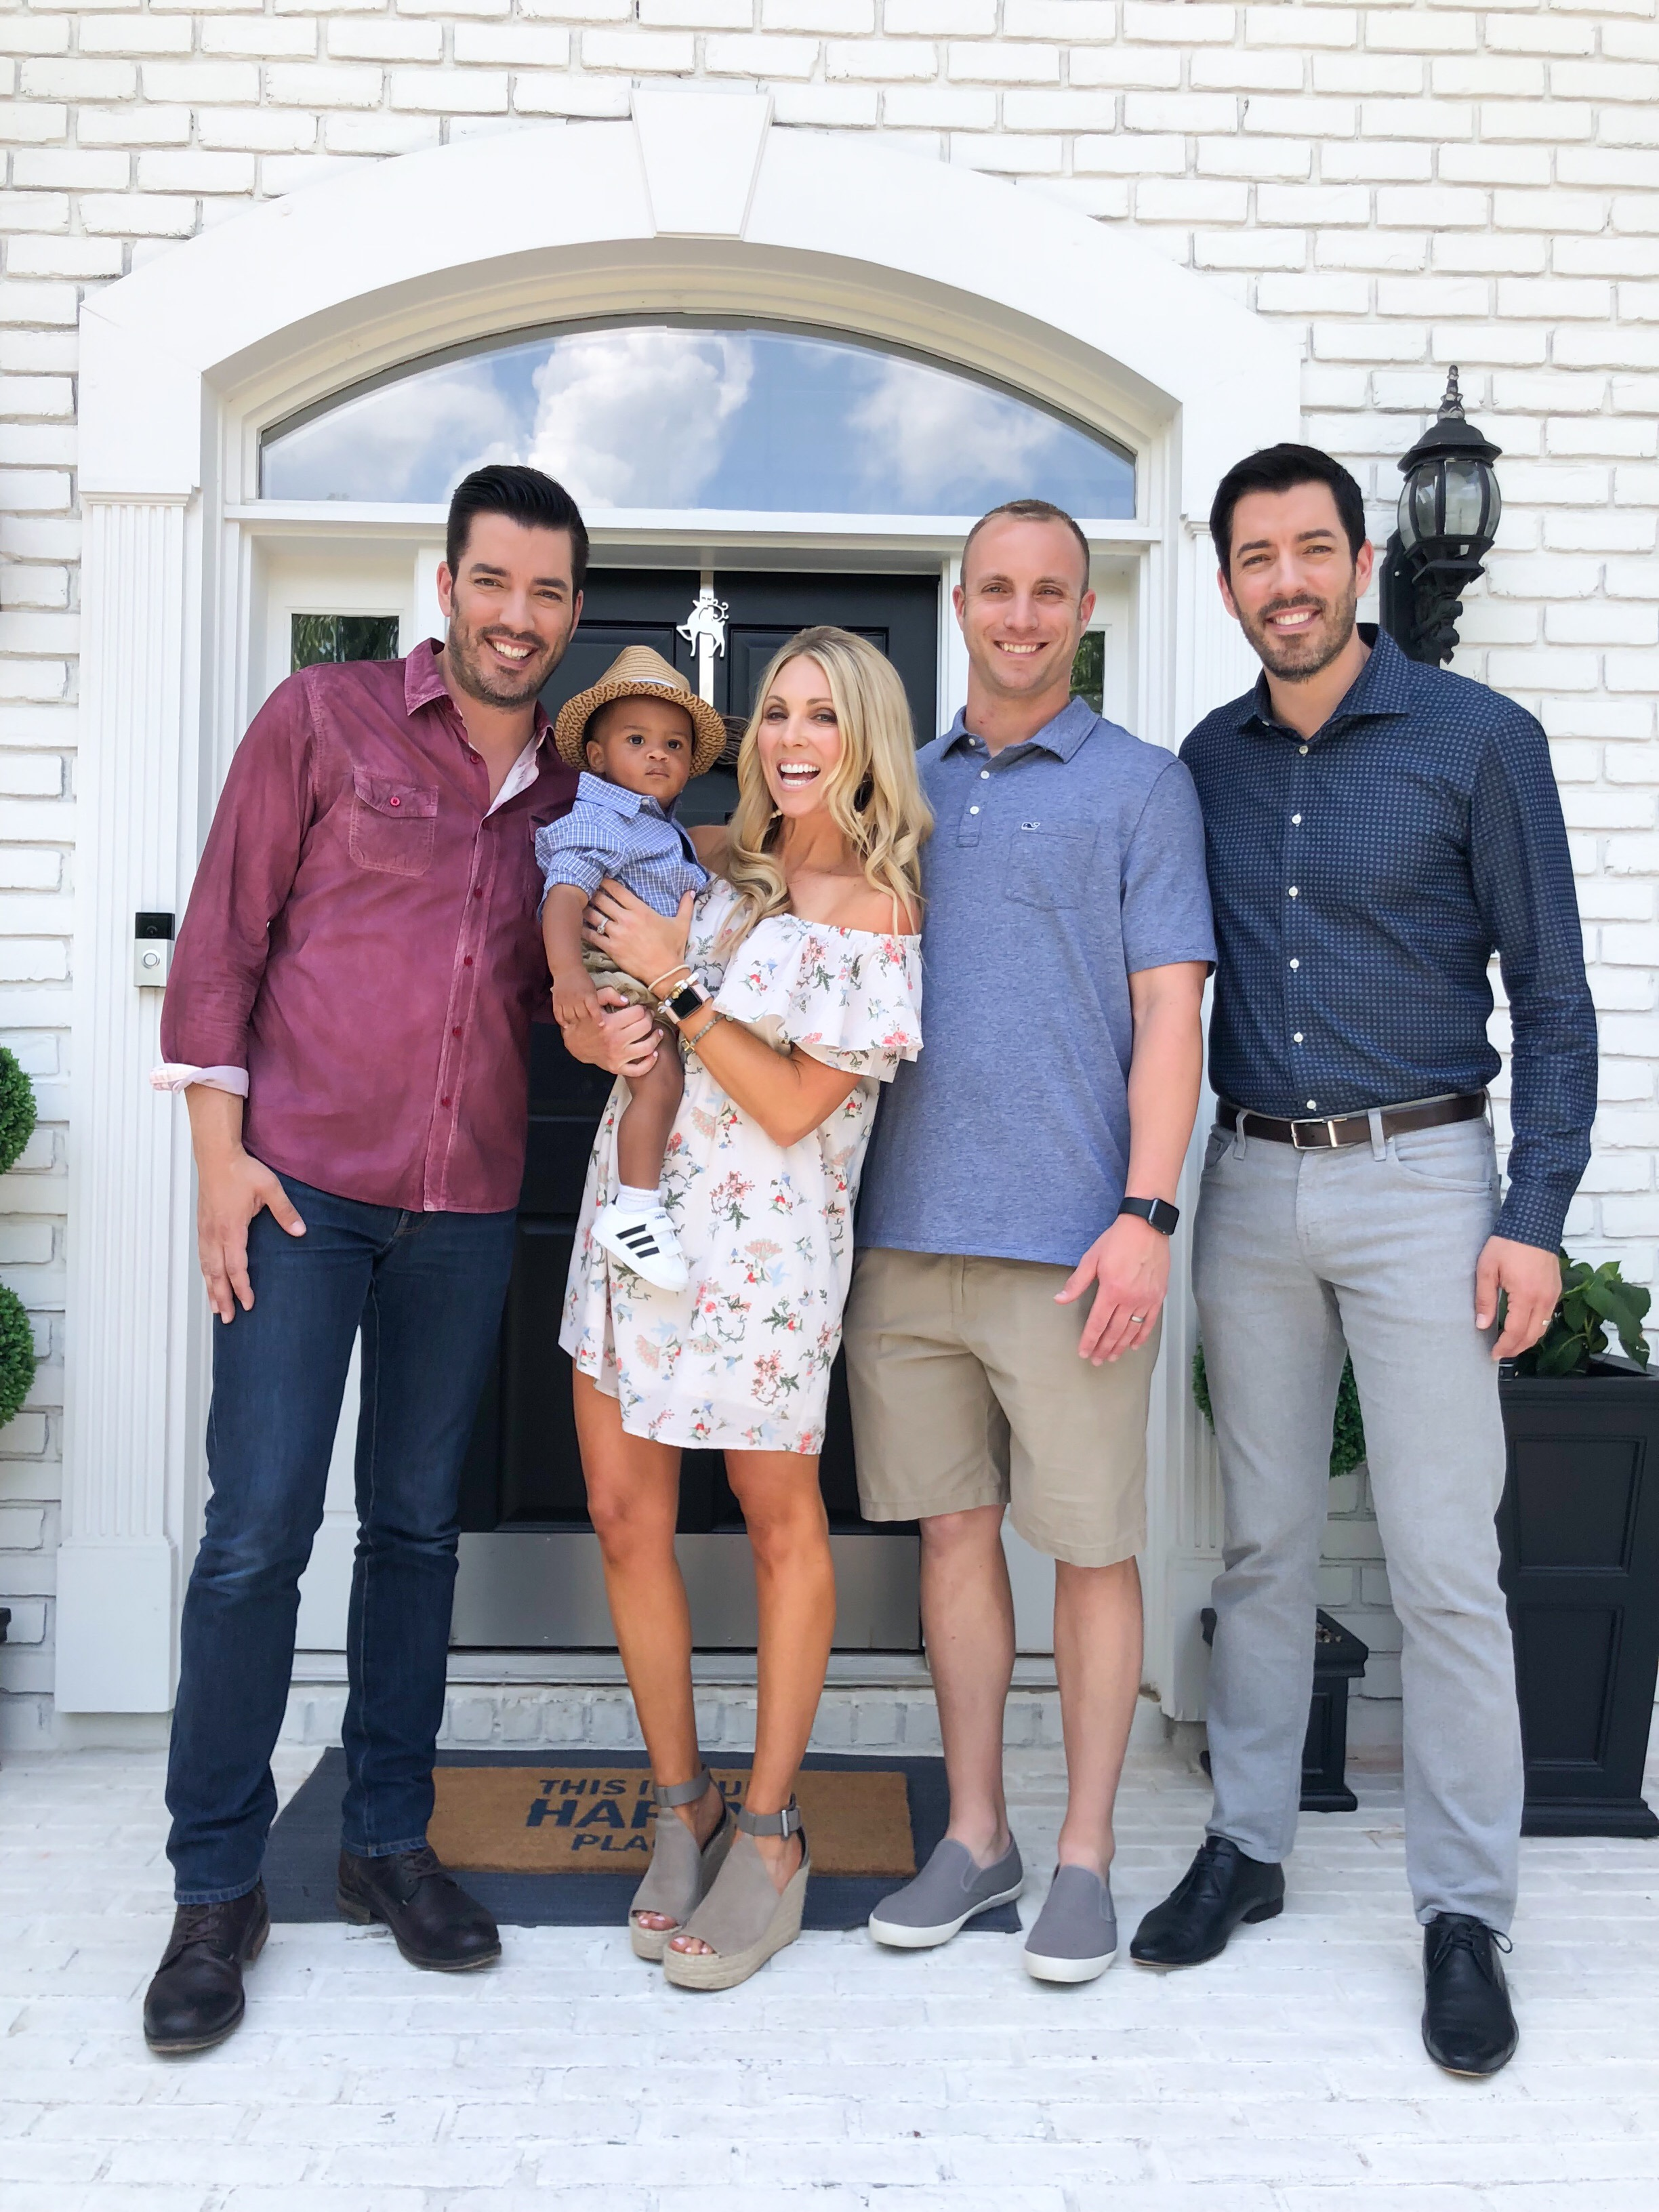 Property Brothers Dream Home - Go behind the scenes of the hit tv show with the Reimold family.